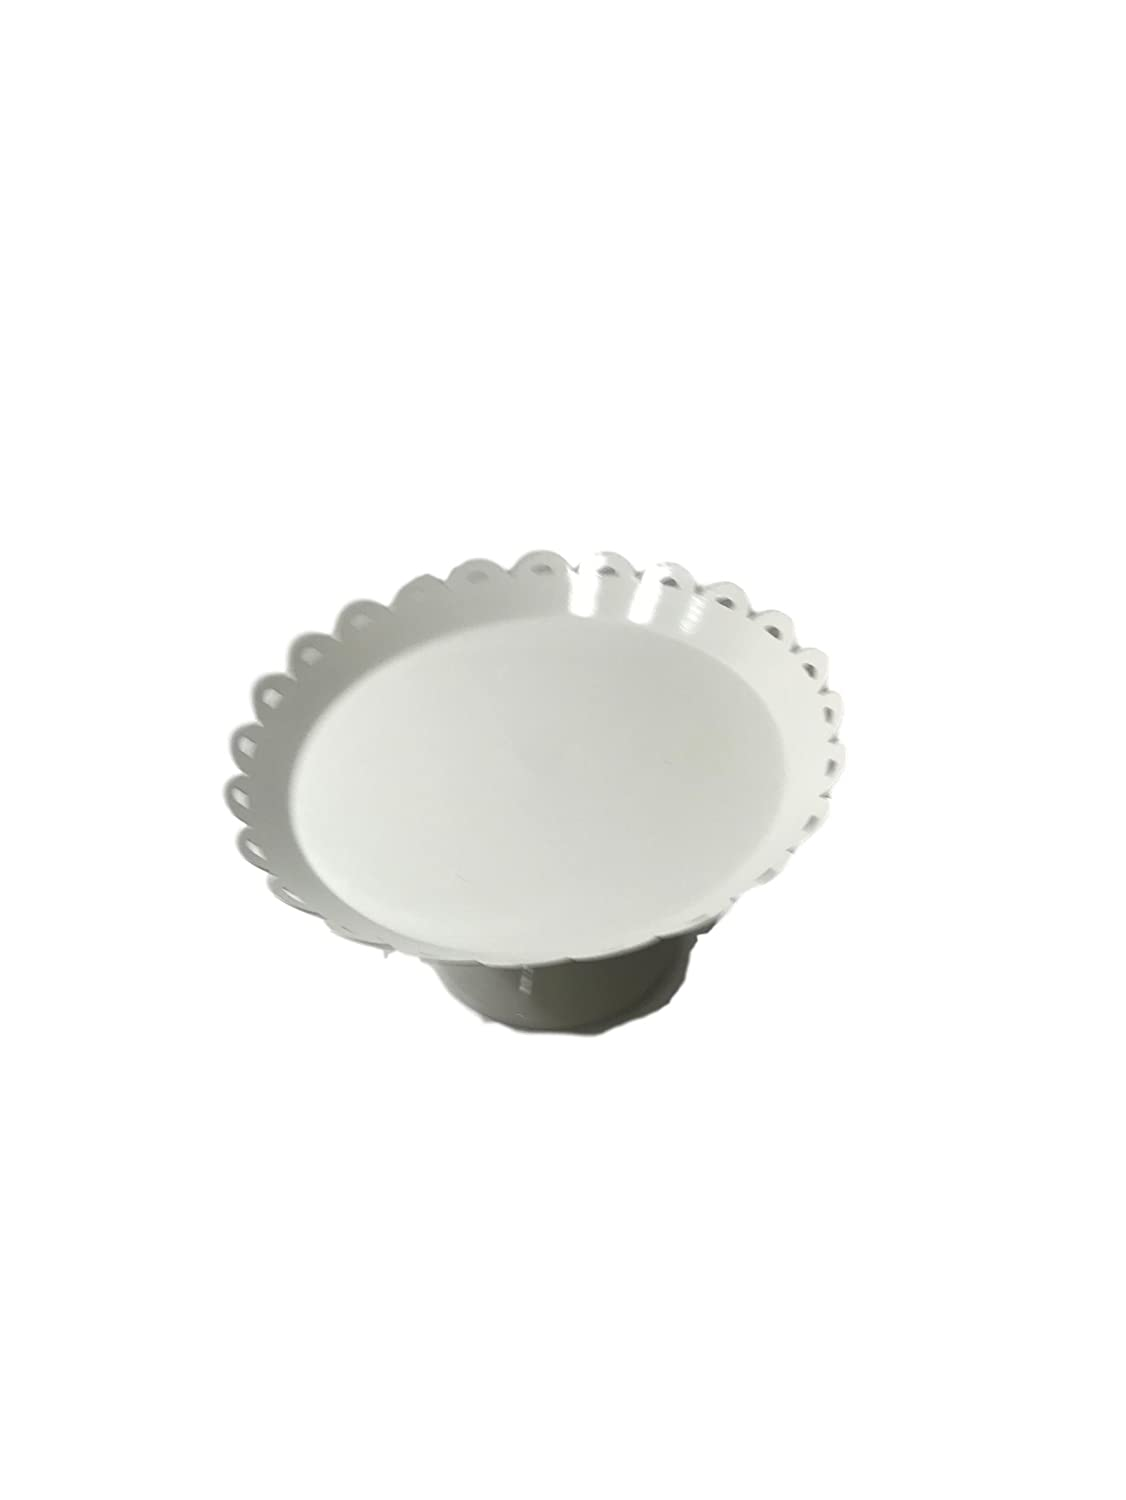 Spr!tz Cake Stand with Raised Scalloped Edge